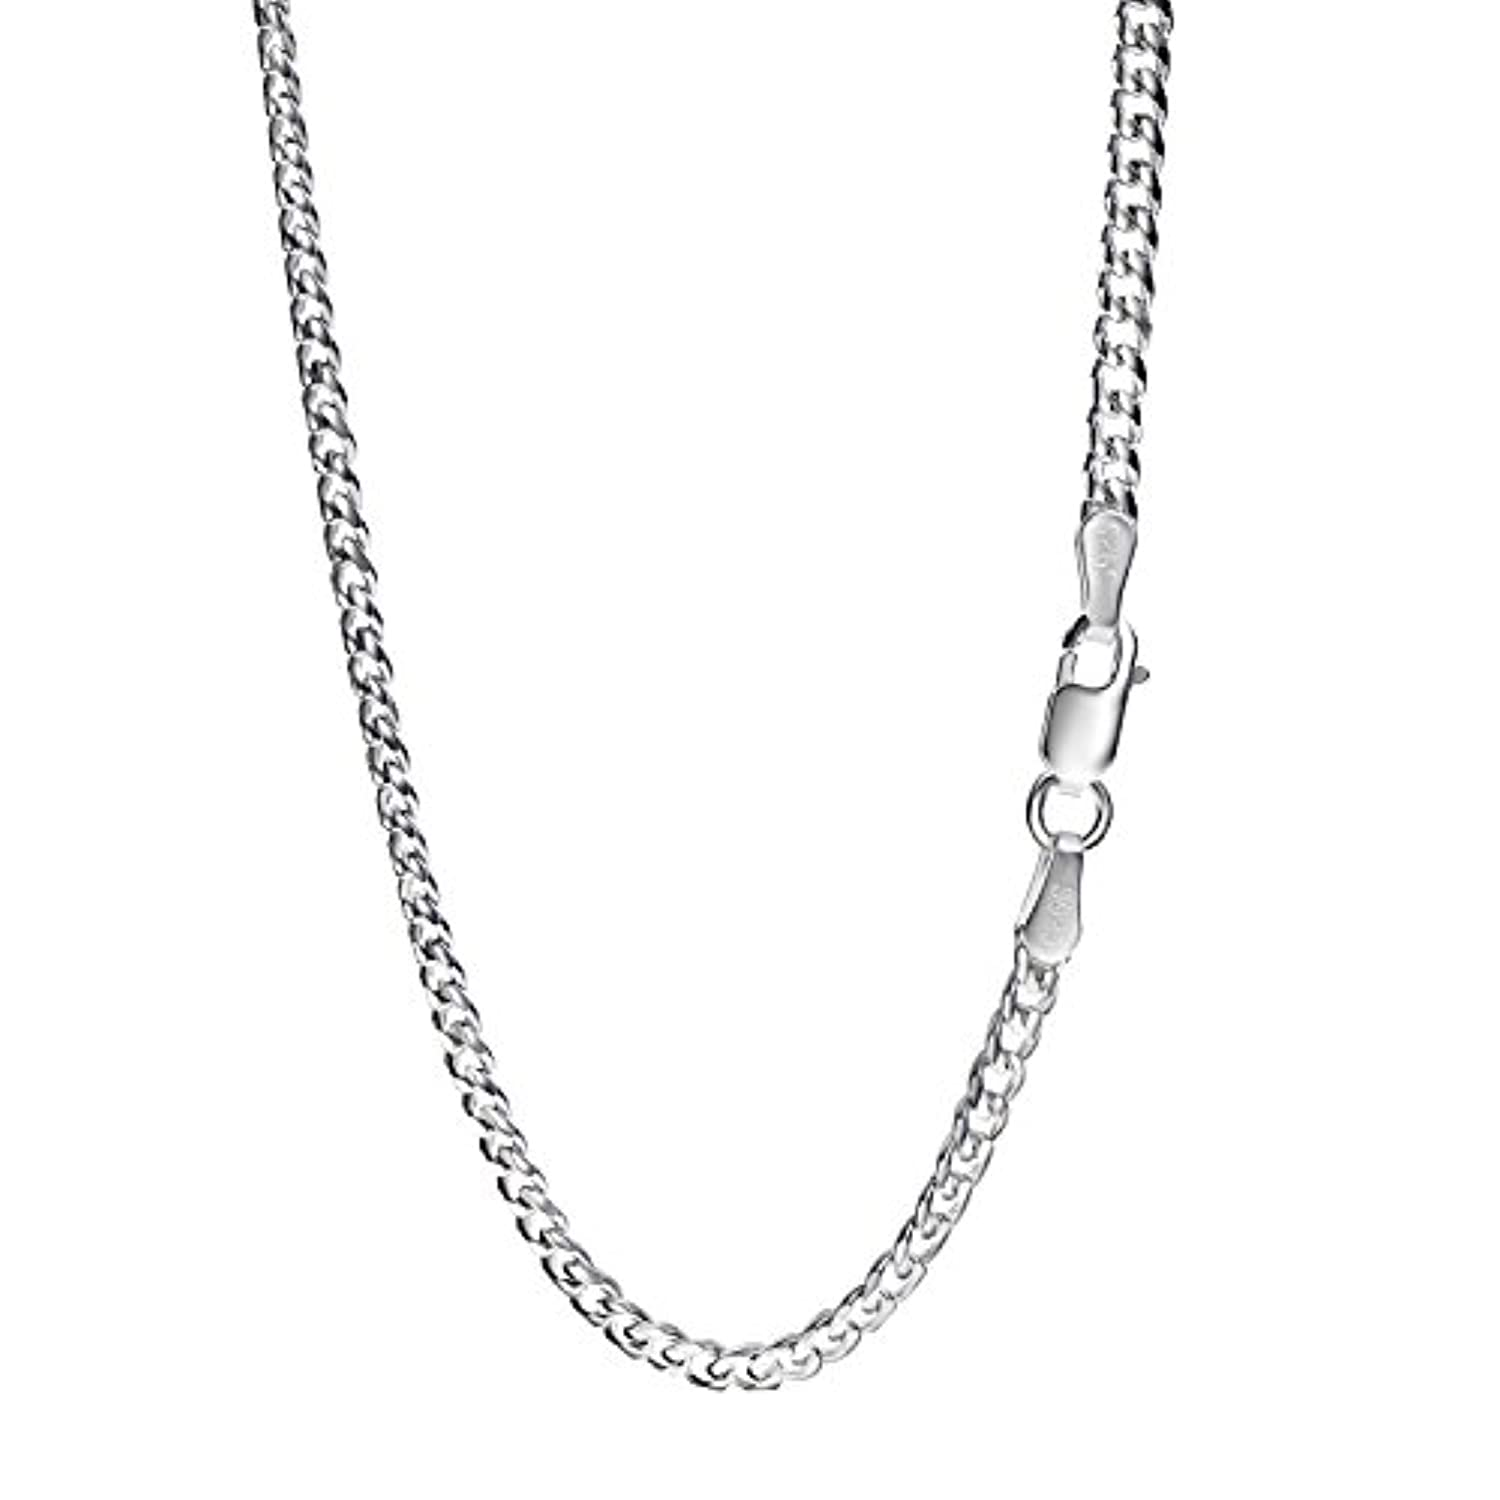 [REOTTI] 喜平チェーン ネックレス シルバー925 sv925 幅2.8mm 長さ45~50cm silver necklace